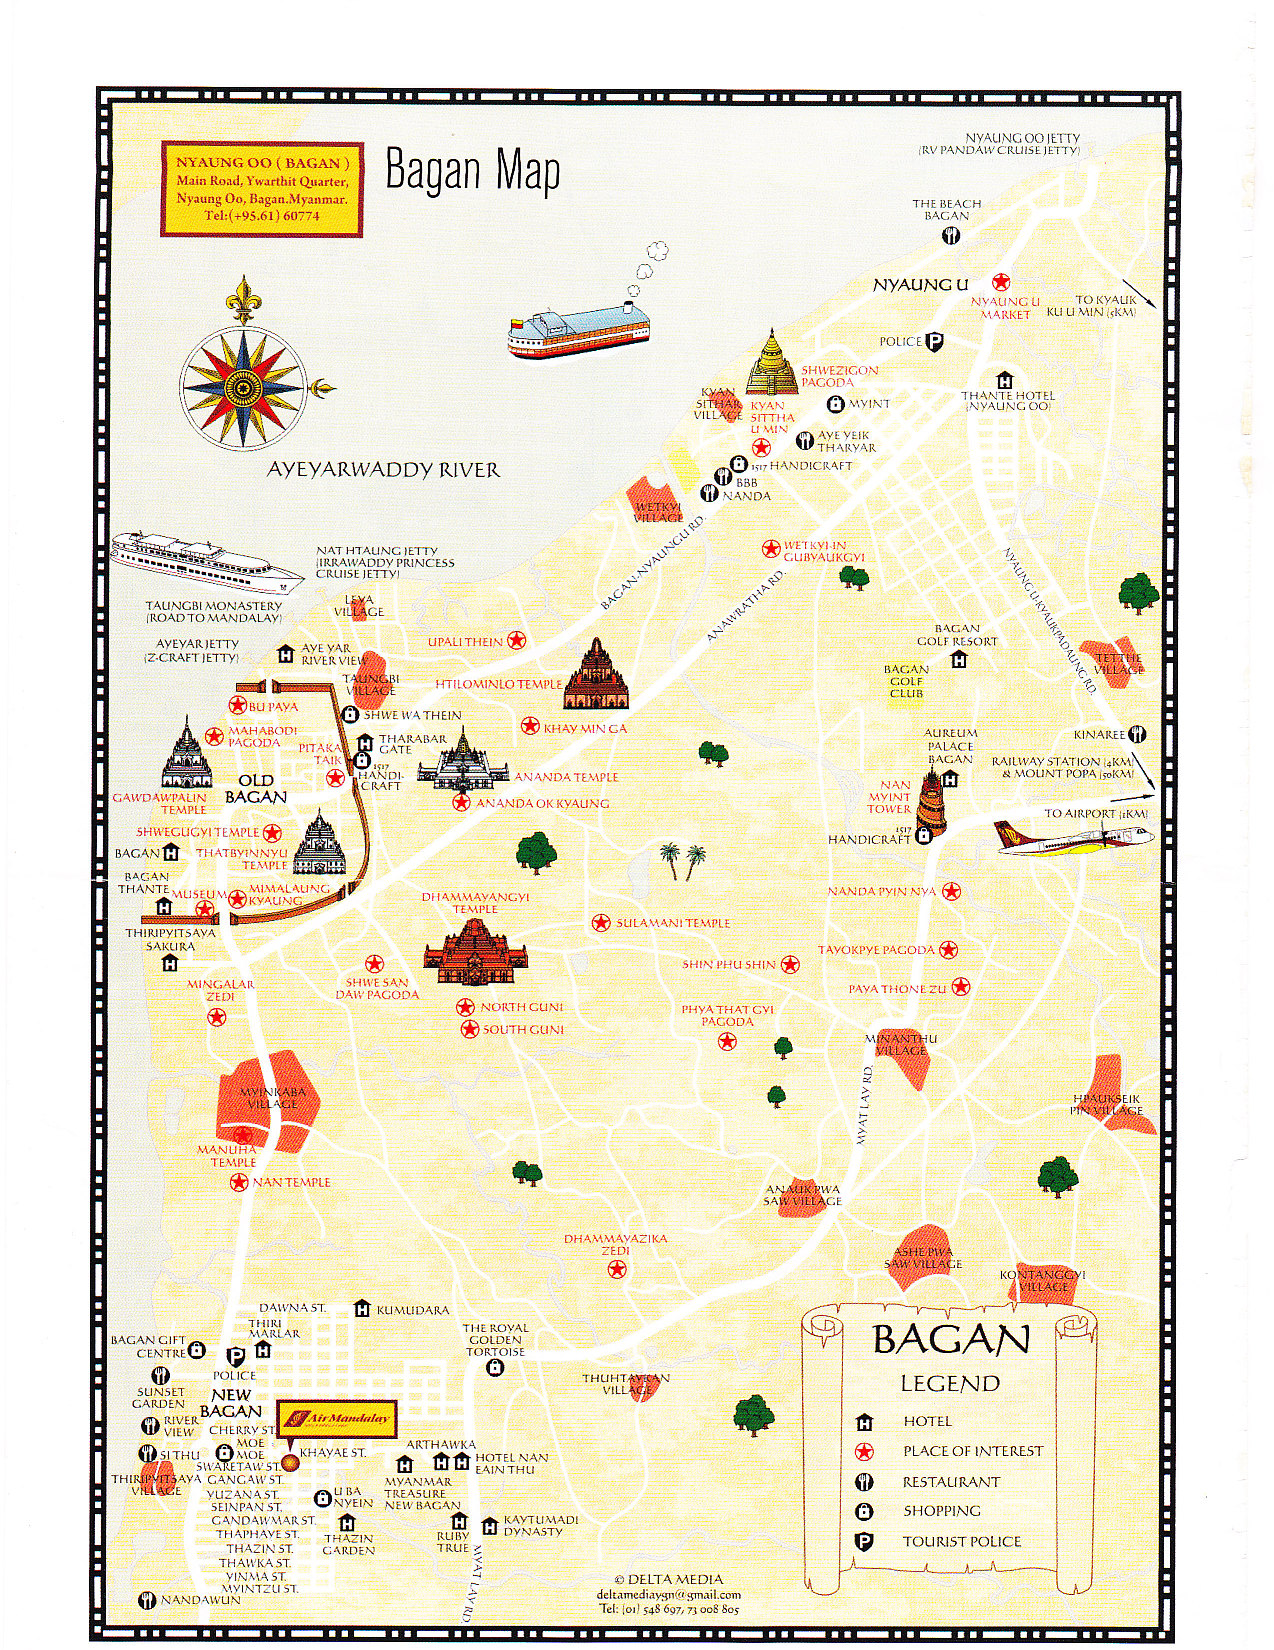 Far East Travel 2012 – Myanmar Tourist Map